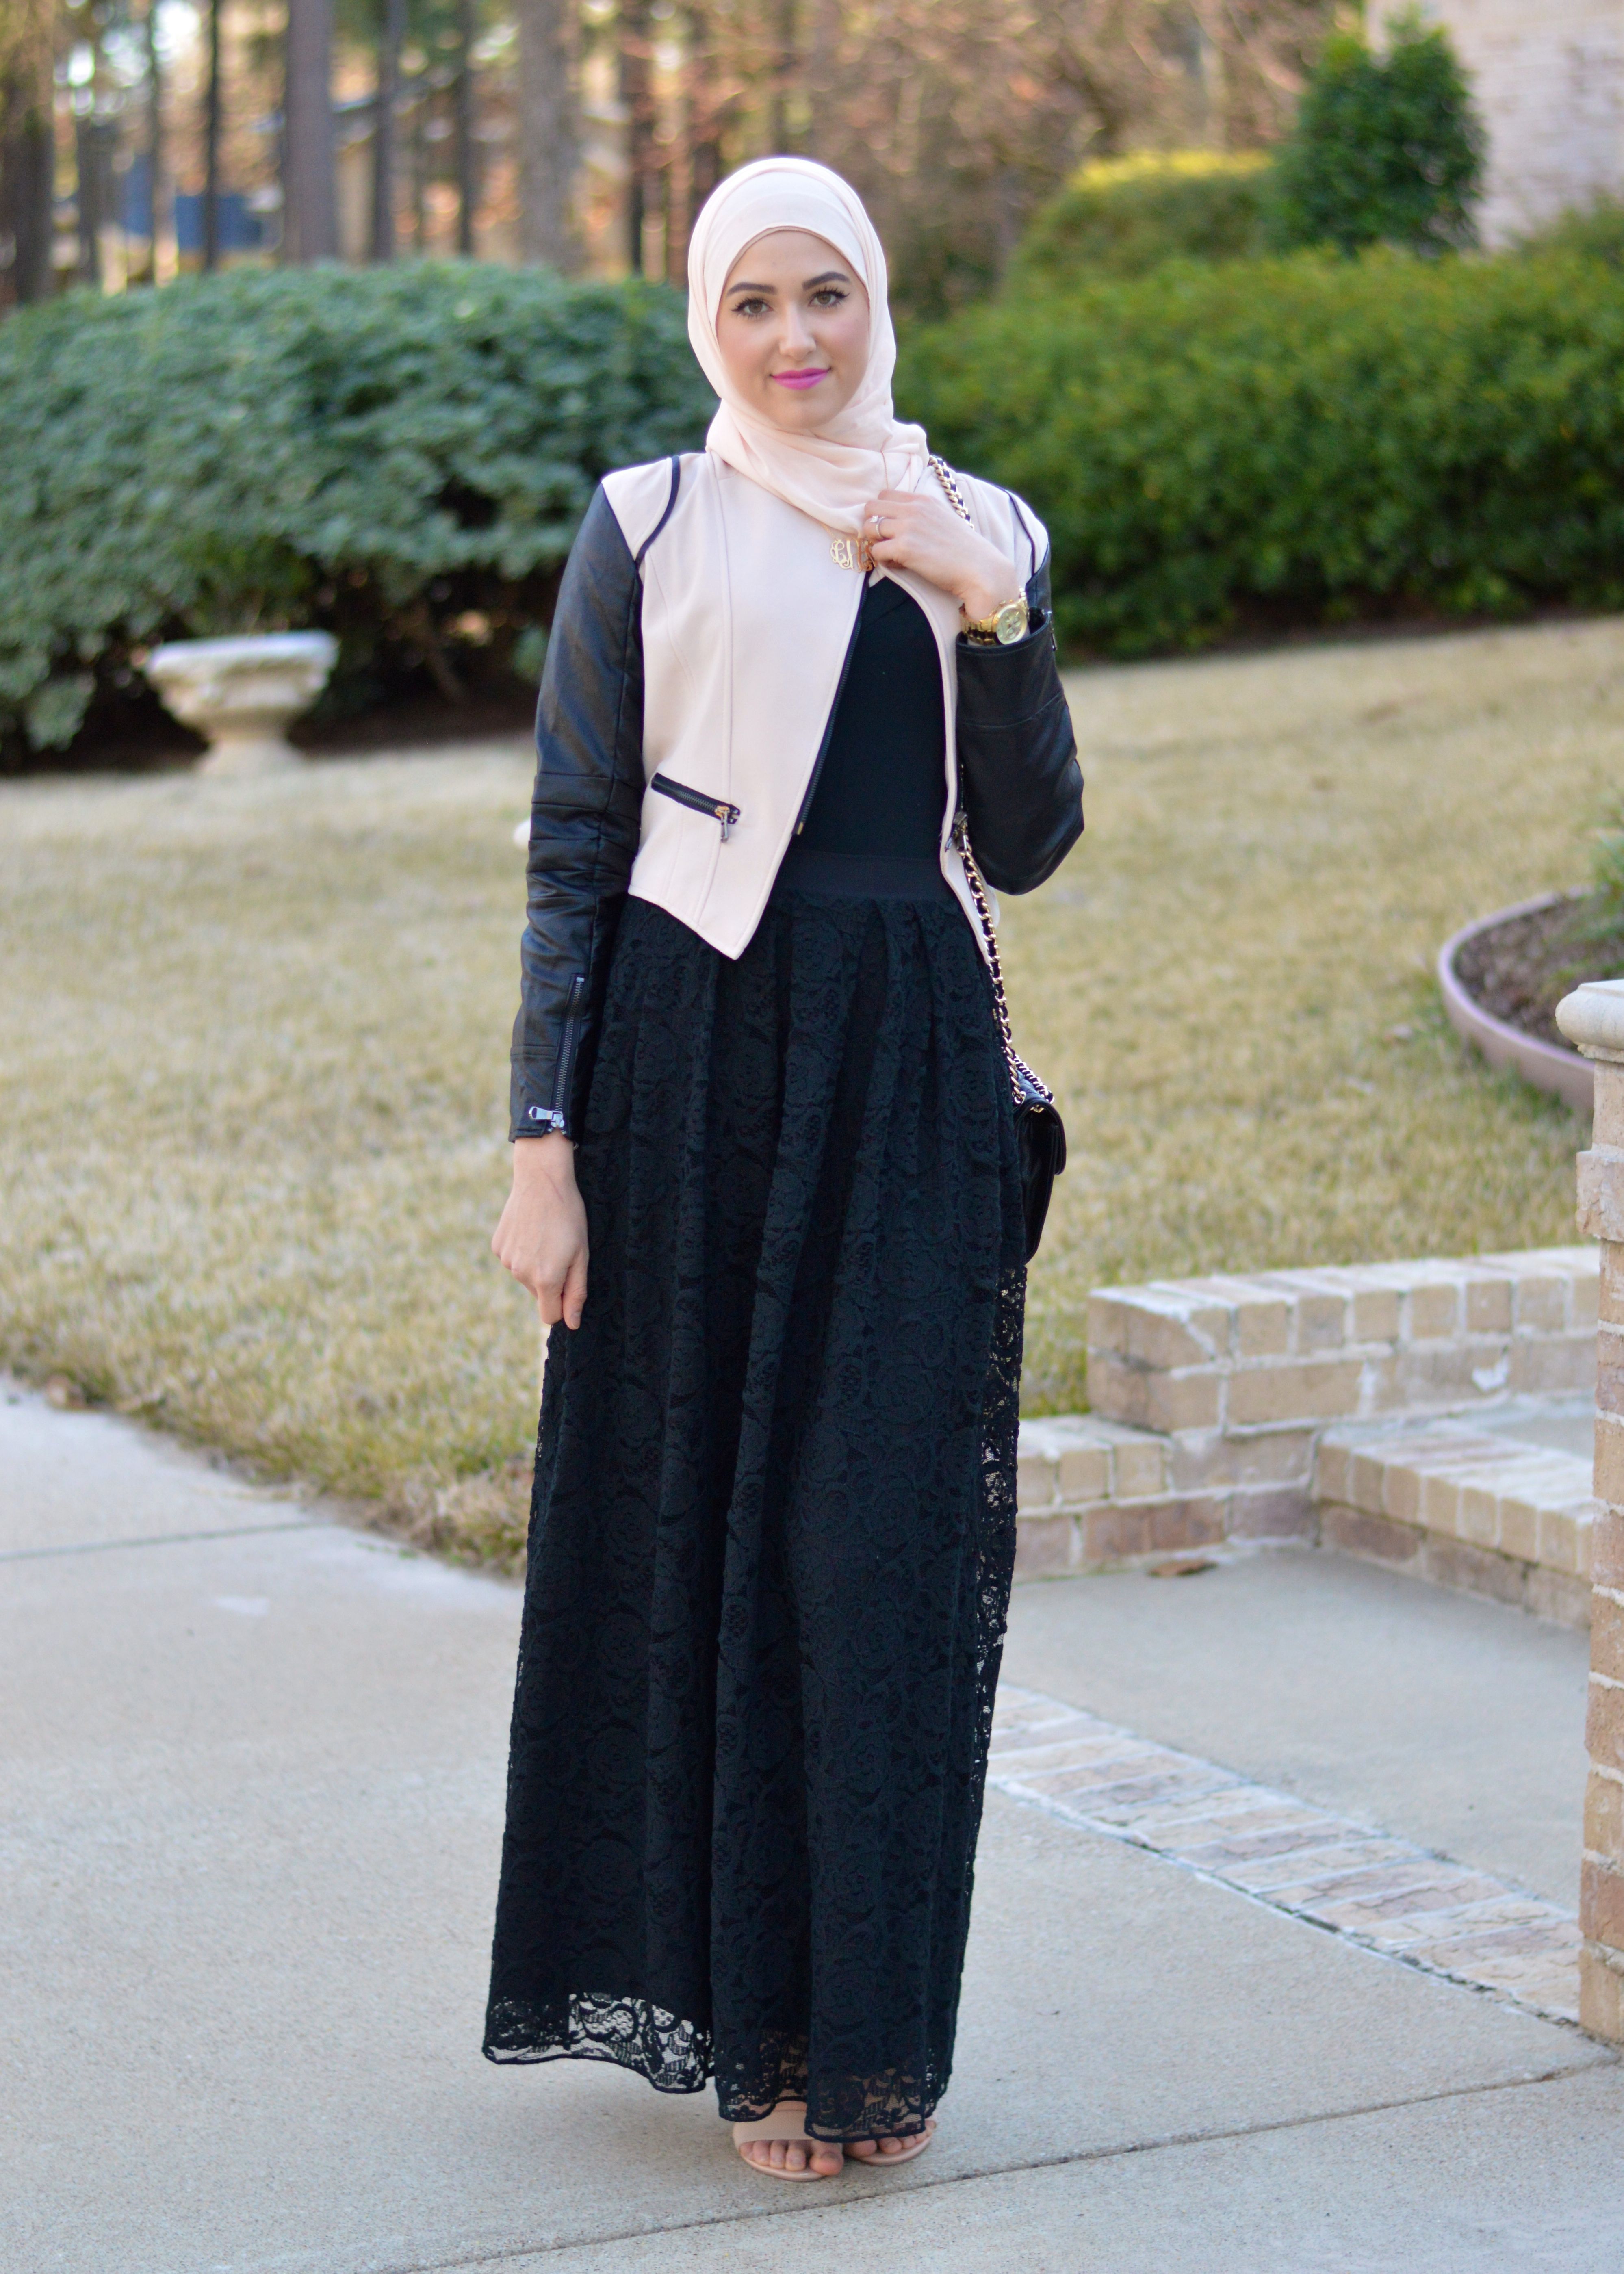 Leather jacket hijab - Like The Combo Of The Leather Jacket And Laced Dress